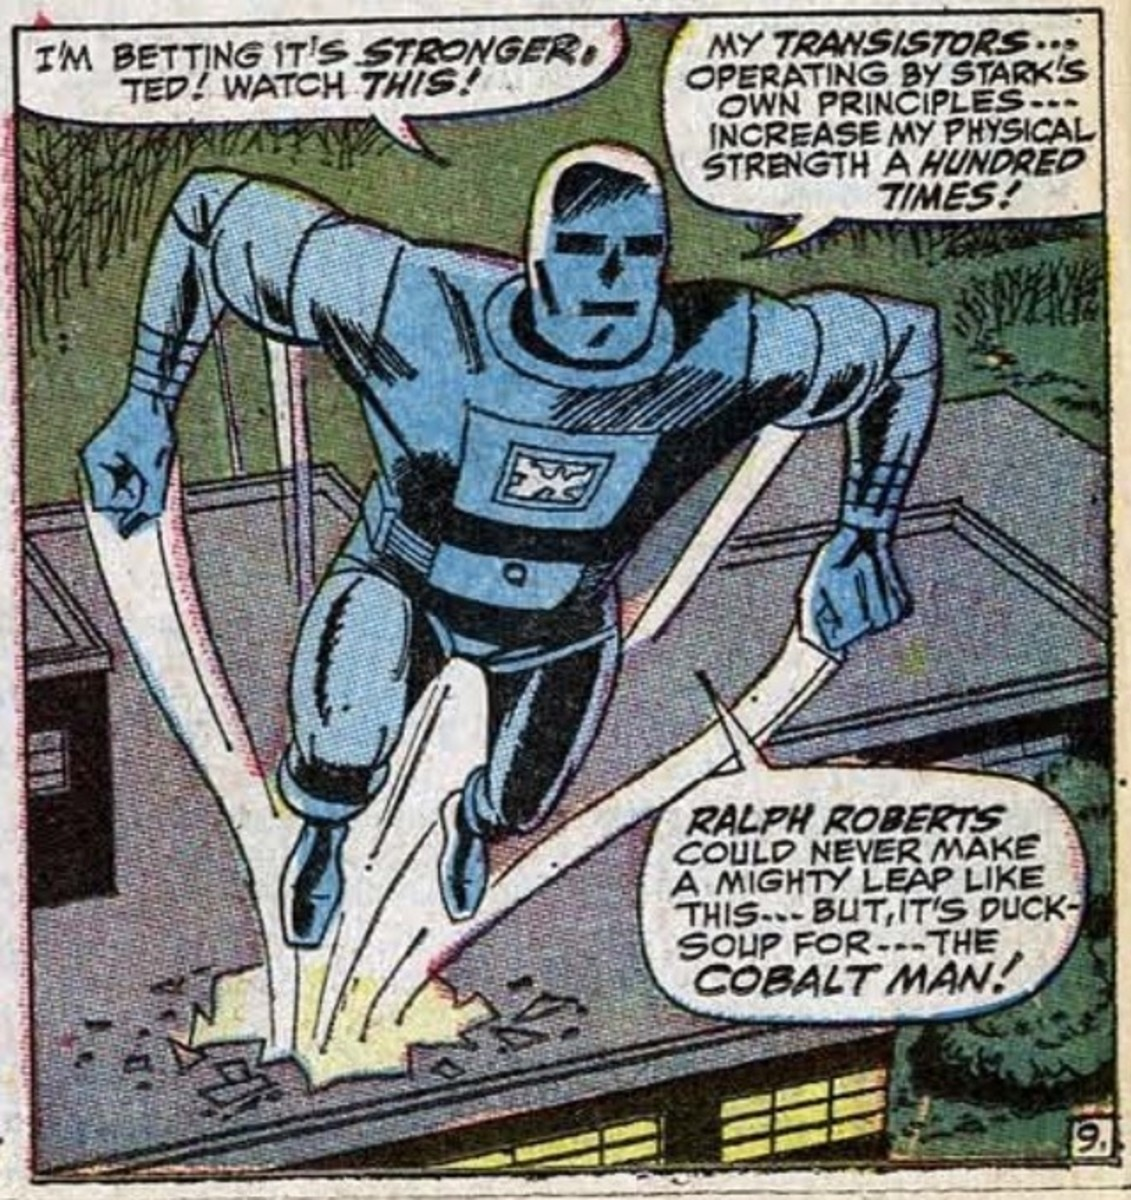 Cobalt Man and his toxic armor